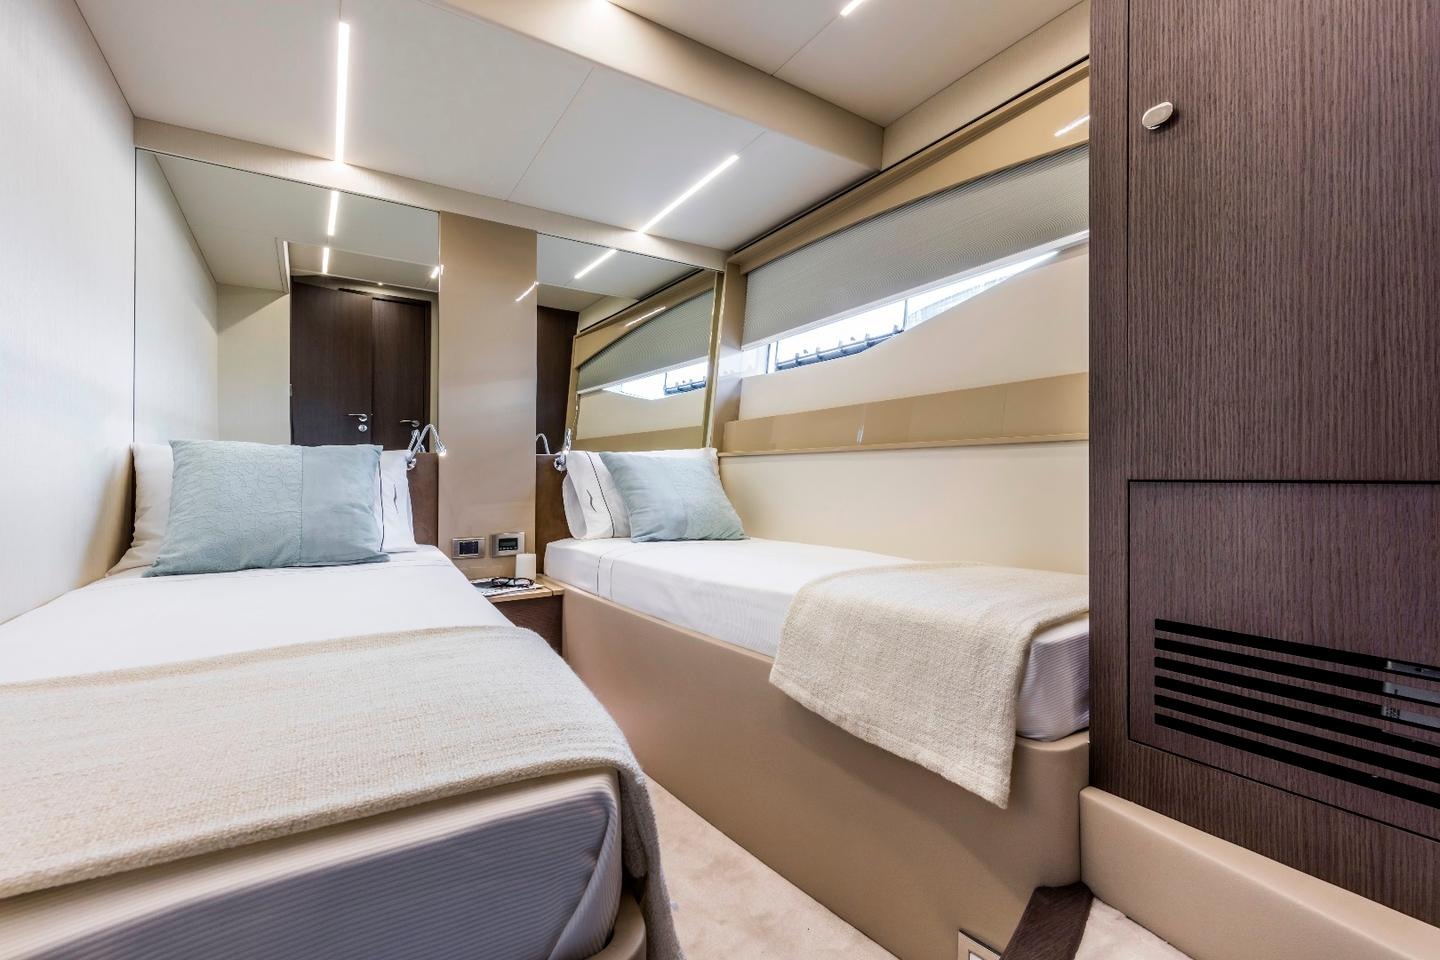 Each cabin on the 62FLY has its own bathroom